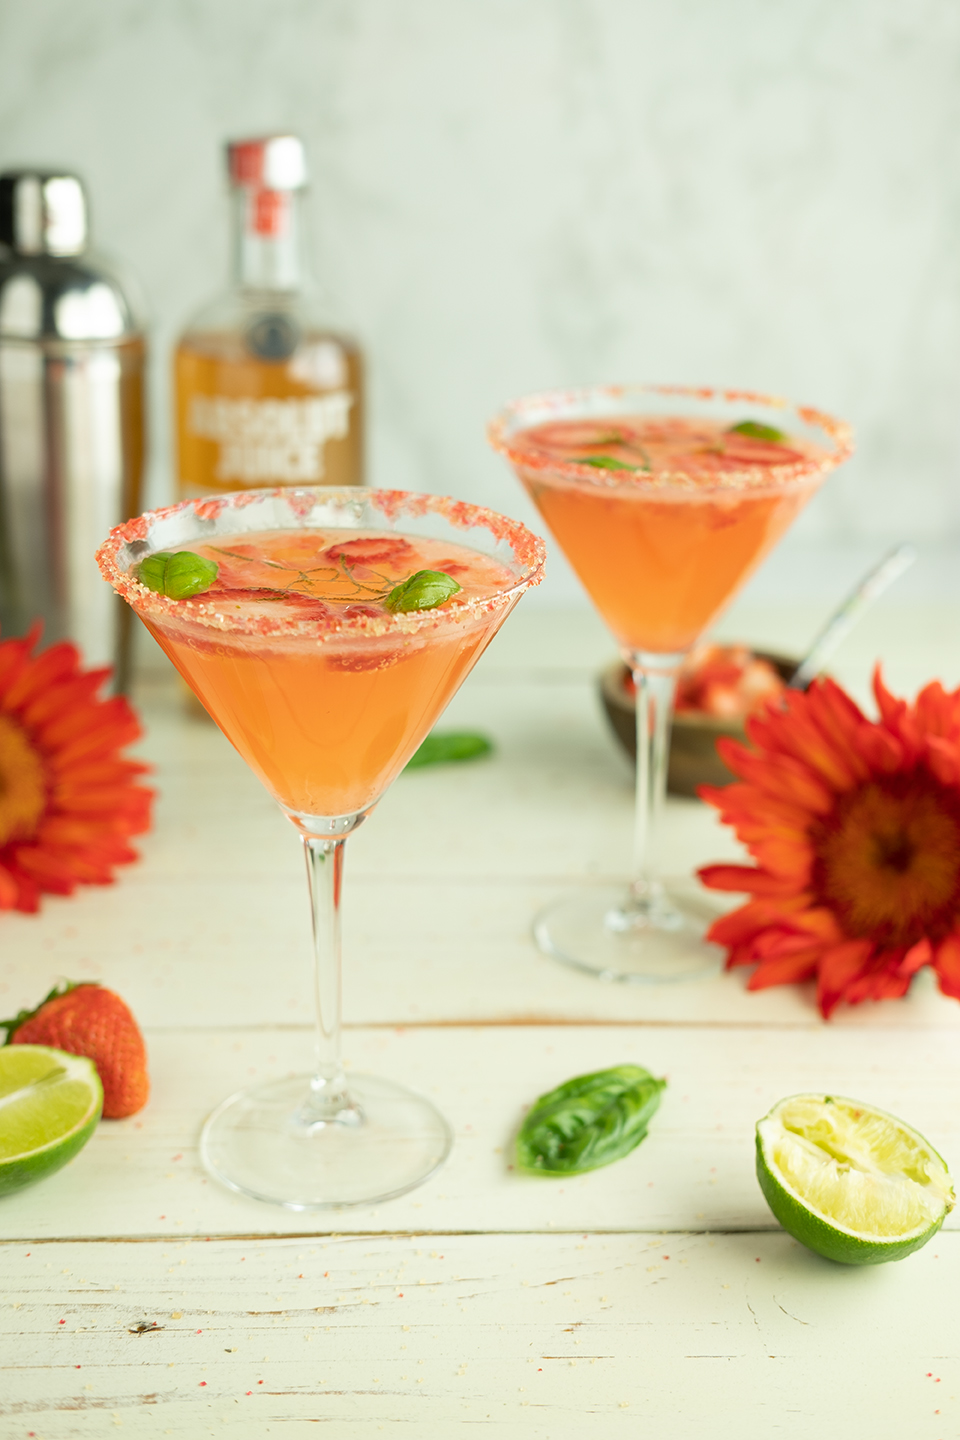 Two strawberry and basil cocktails in sugar-rimmed glasses